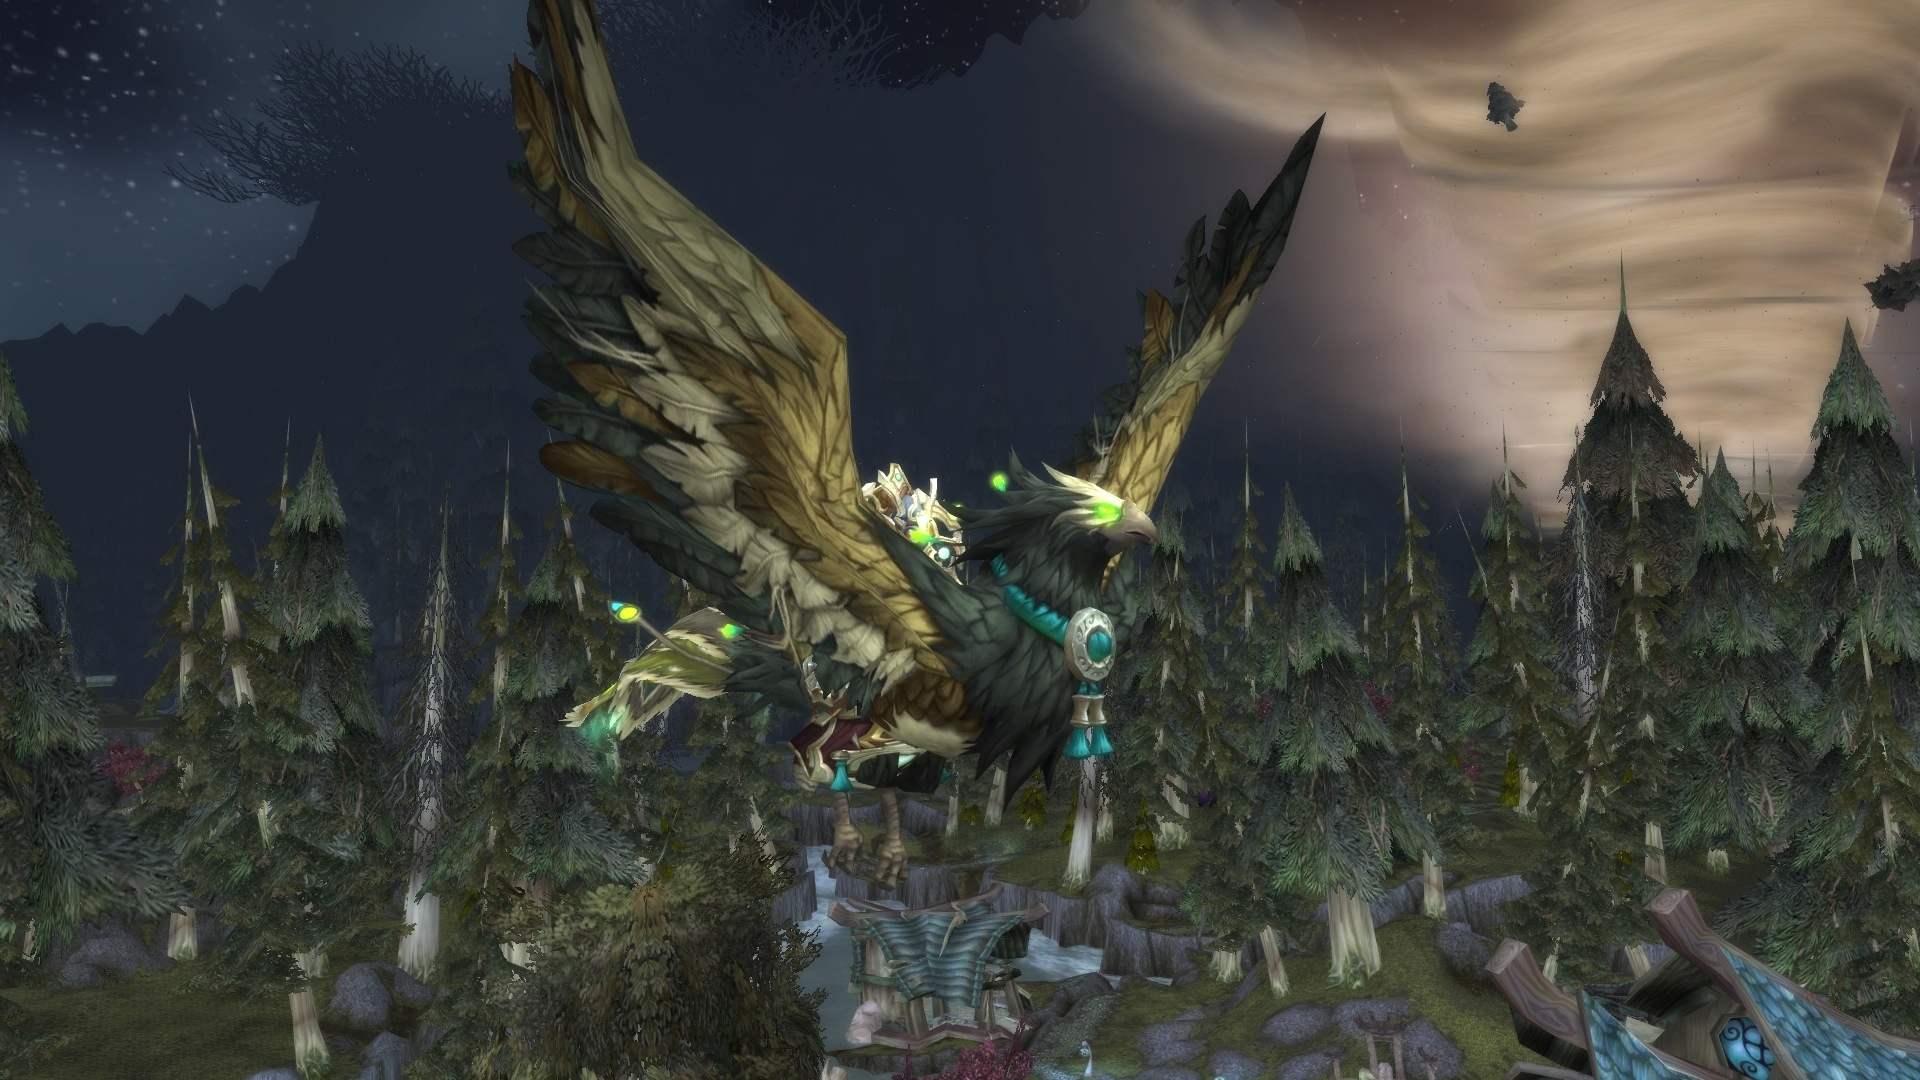 Preparing for 6 0: Guide to Removed Mounts, Pets, Transmog